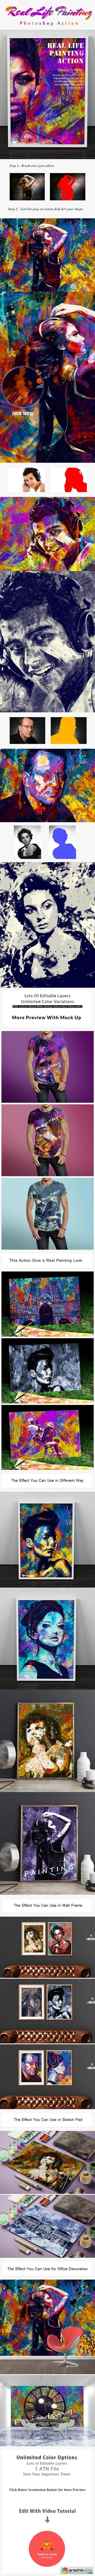 Graphicriver Real Life Painting Action